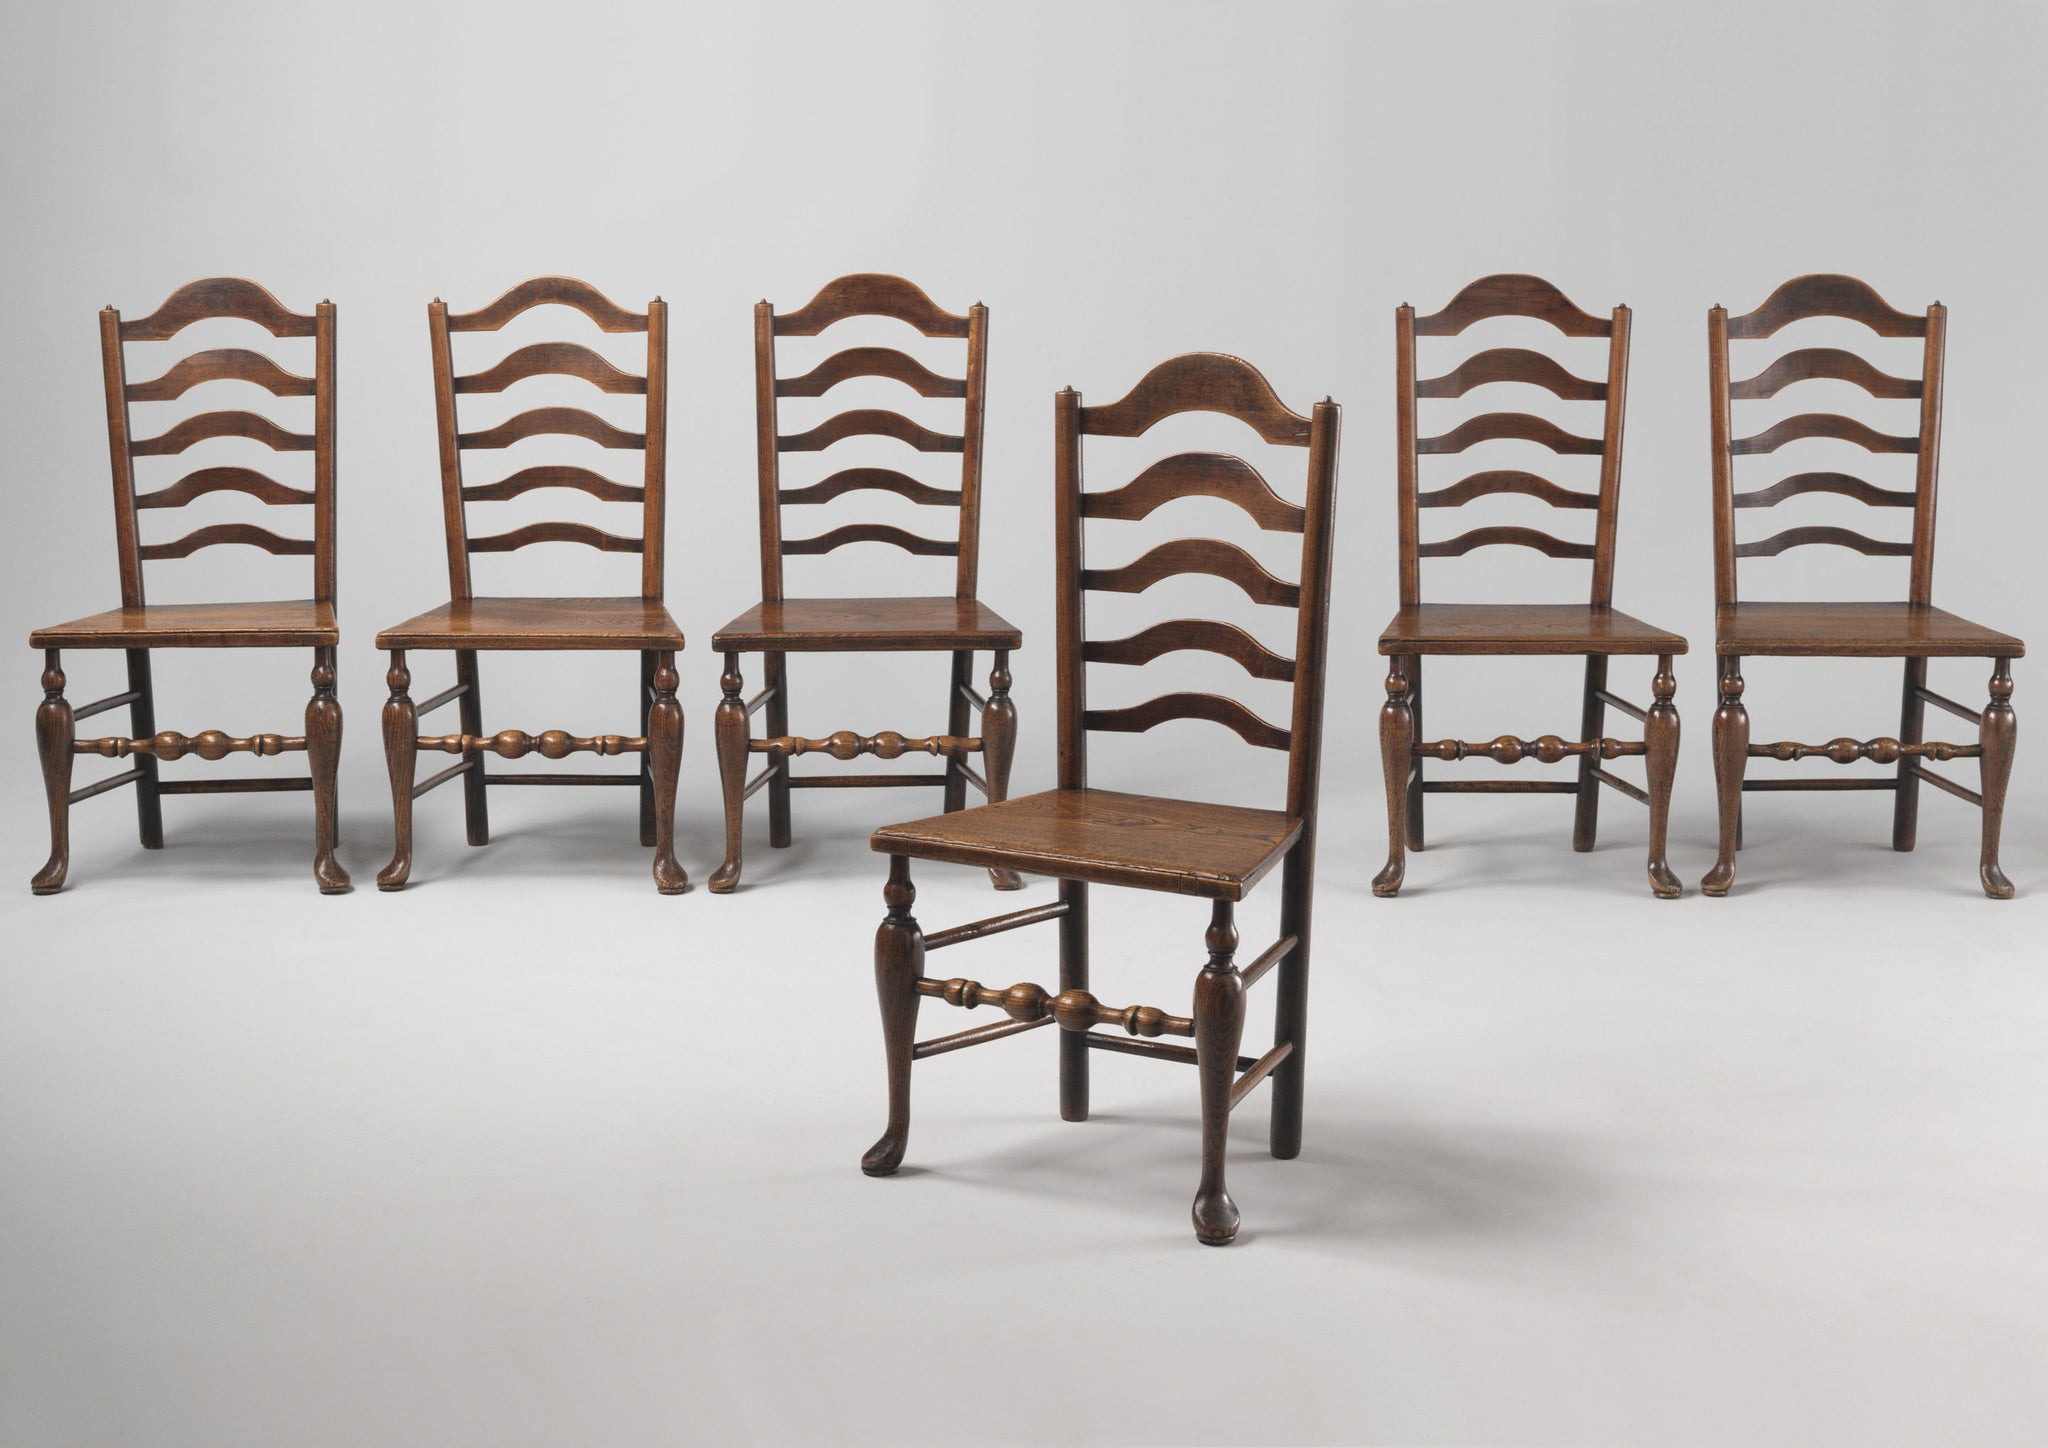 Rare Set of Vernacular Dining Chairs